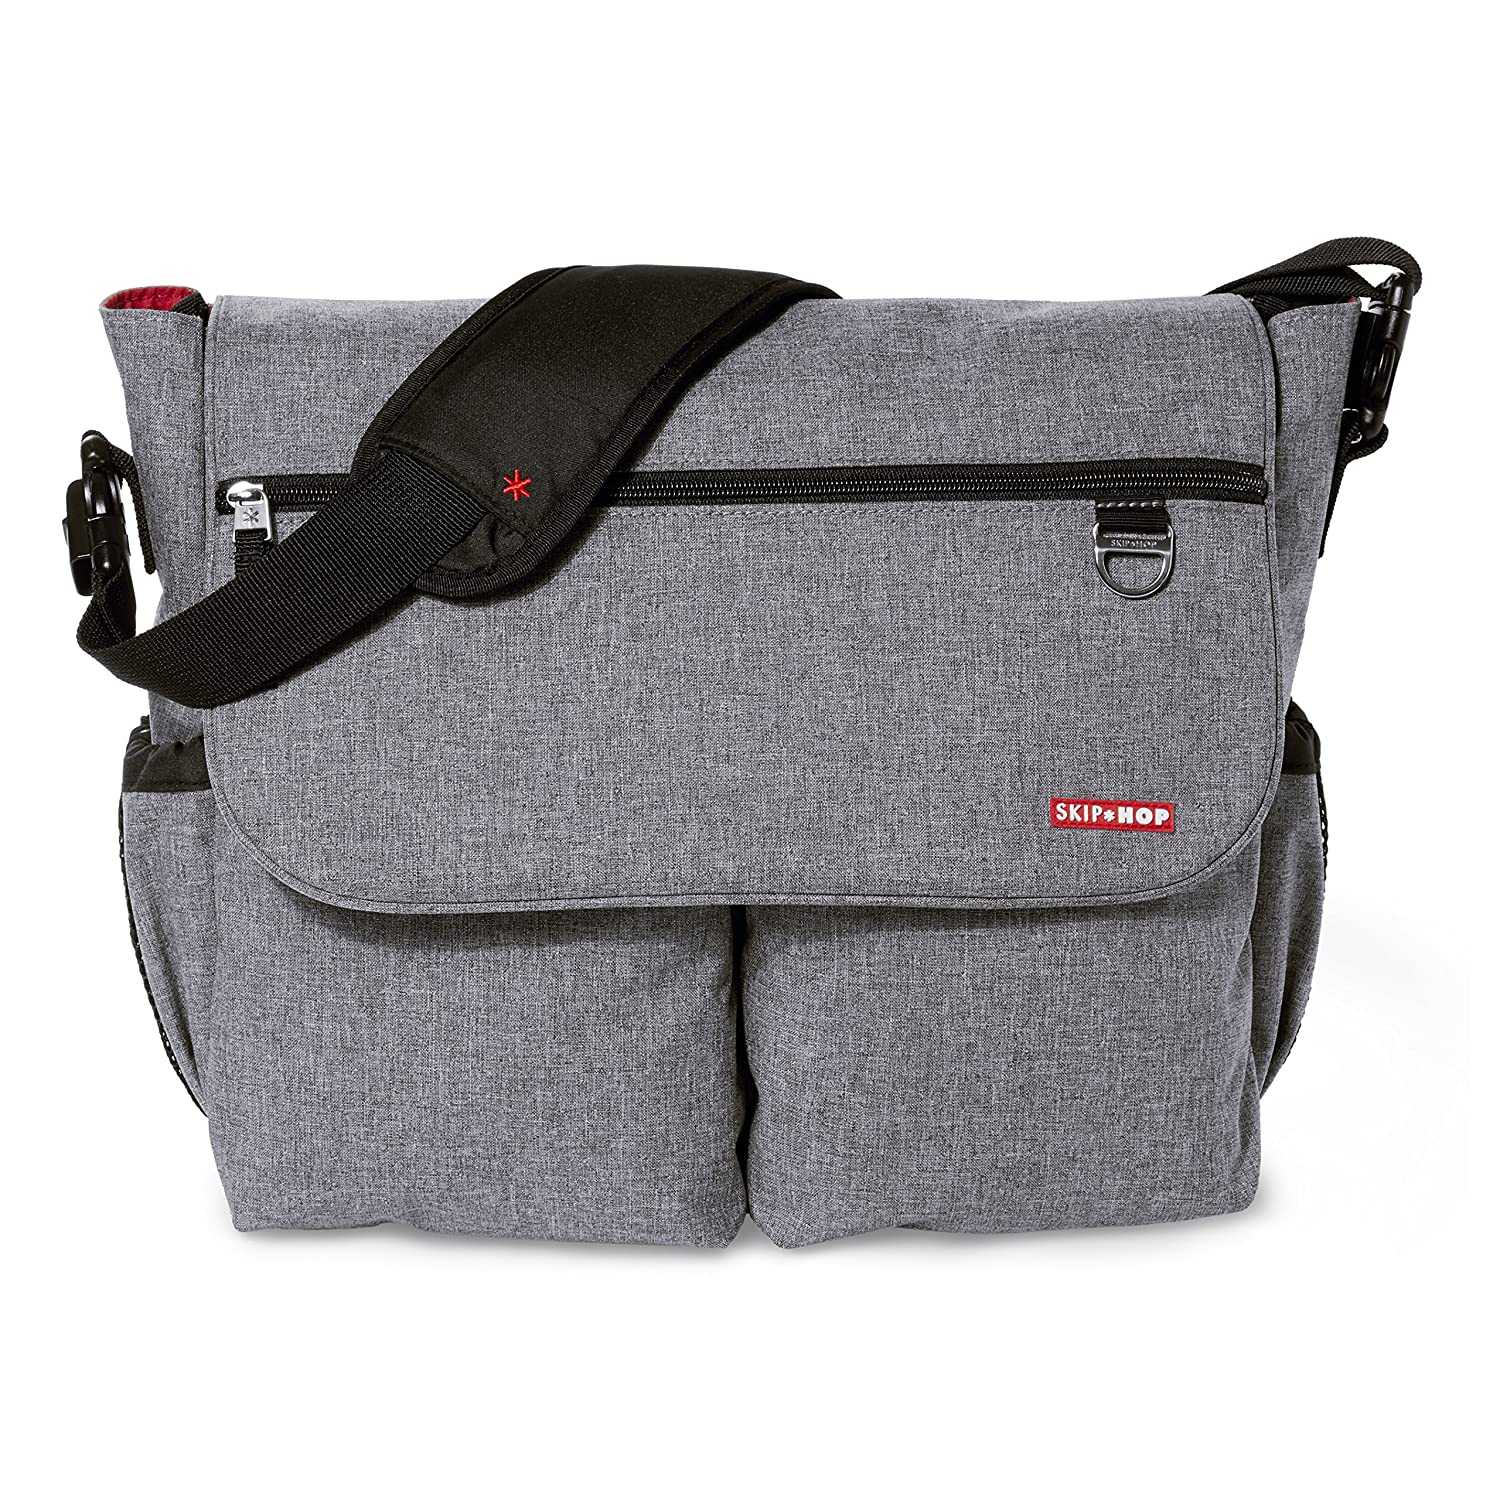 Top 5 Best Diaper Bags for Dads Reviews in 2020 2